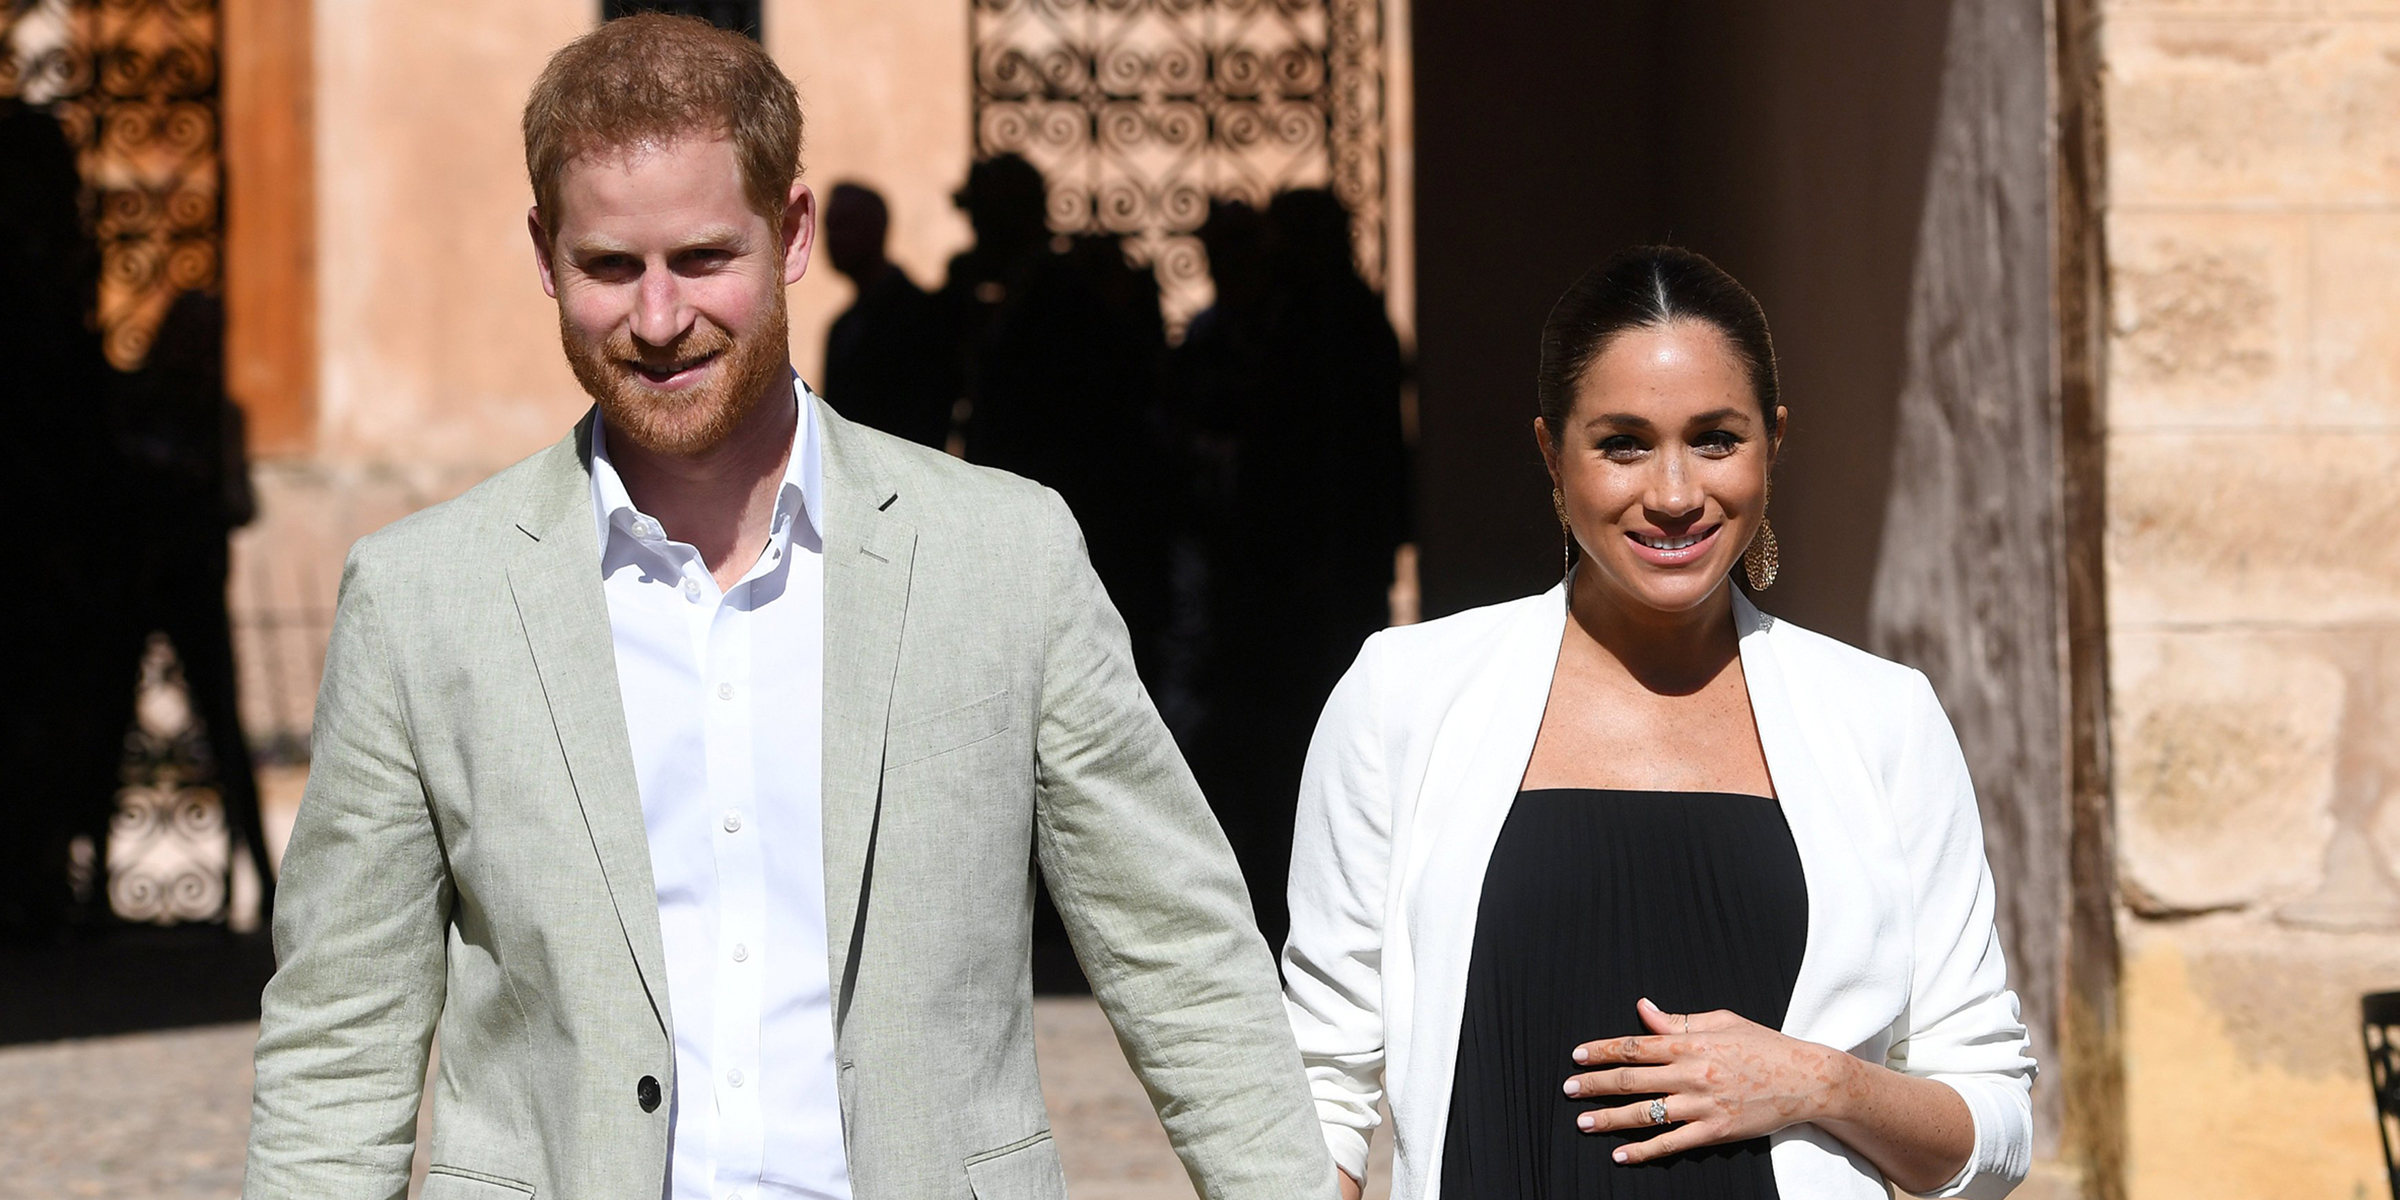 Meghan Markle gives birth to royal baby boy